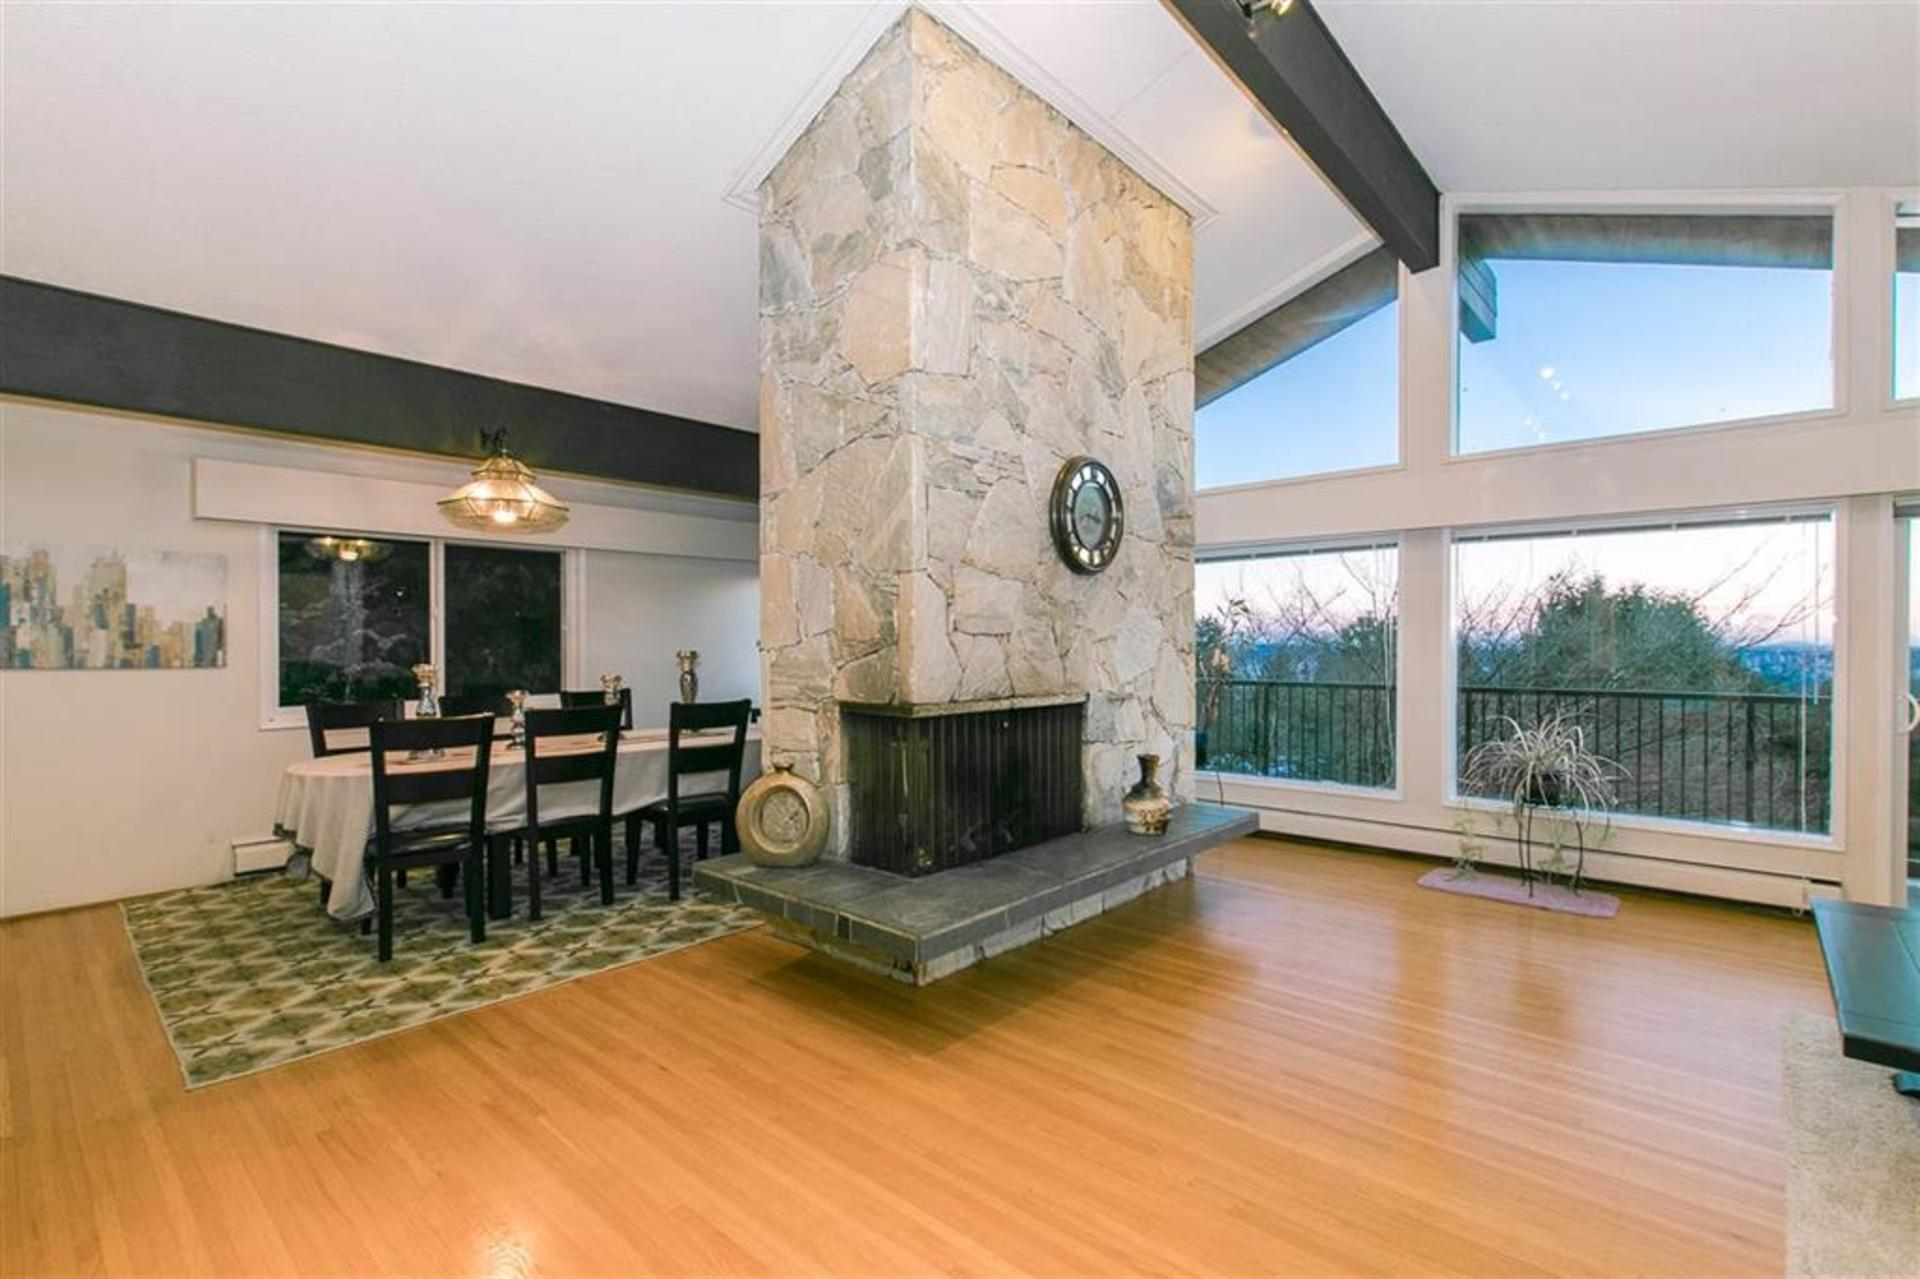 262178191-6 at 1257 Chartwell Place, Chartwell, West Vancouver